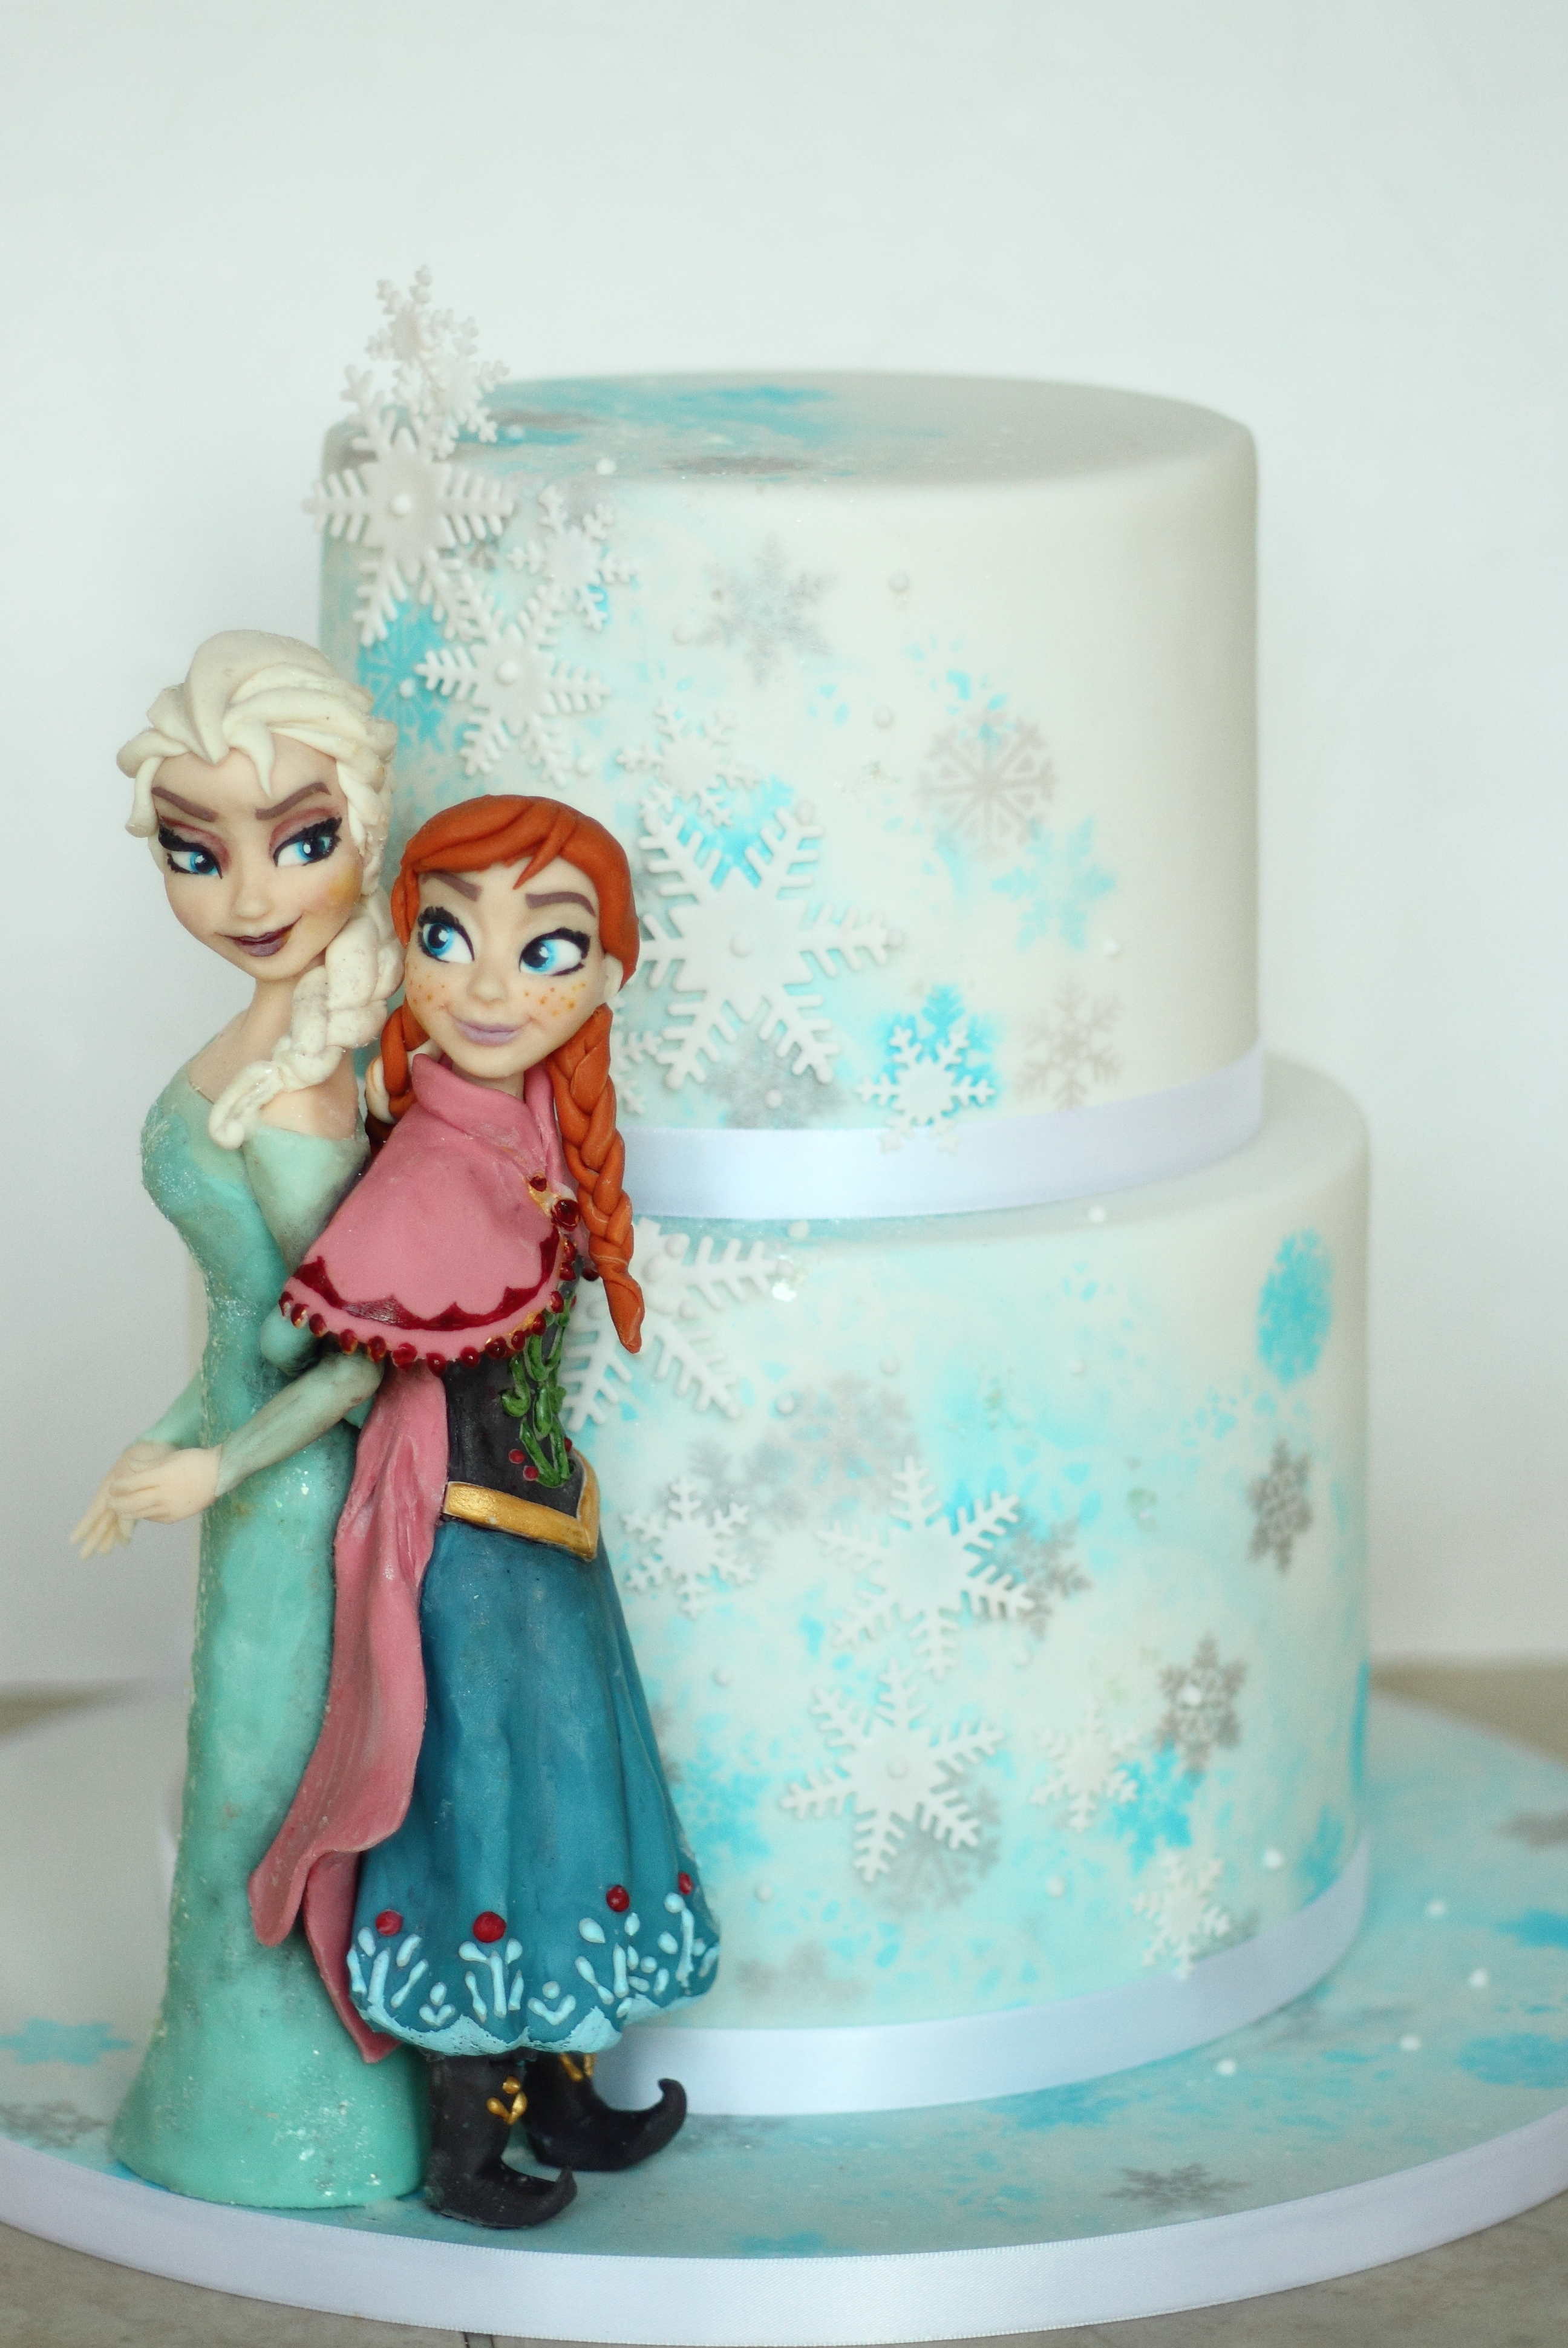 Disneys Frozen Cake Created For Disney Hq In London